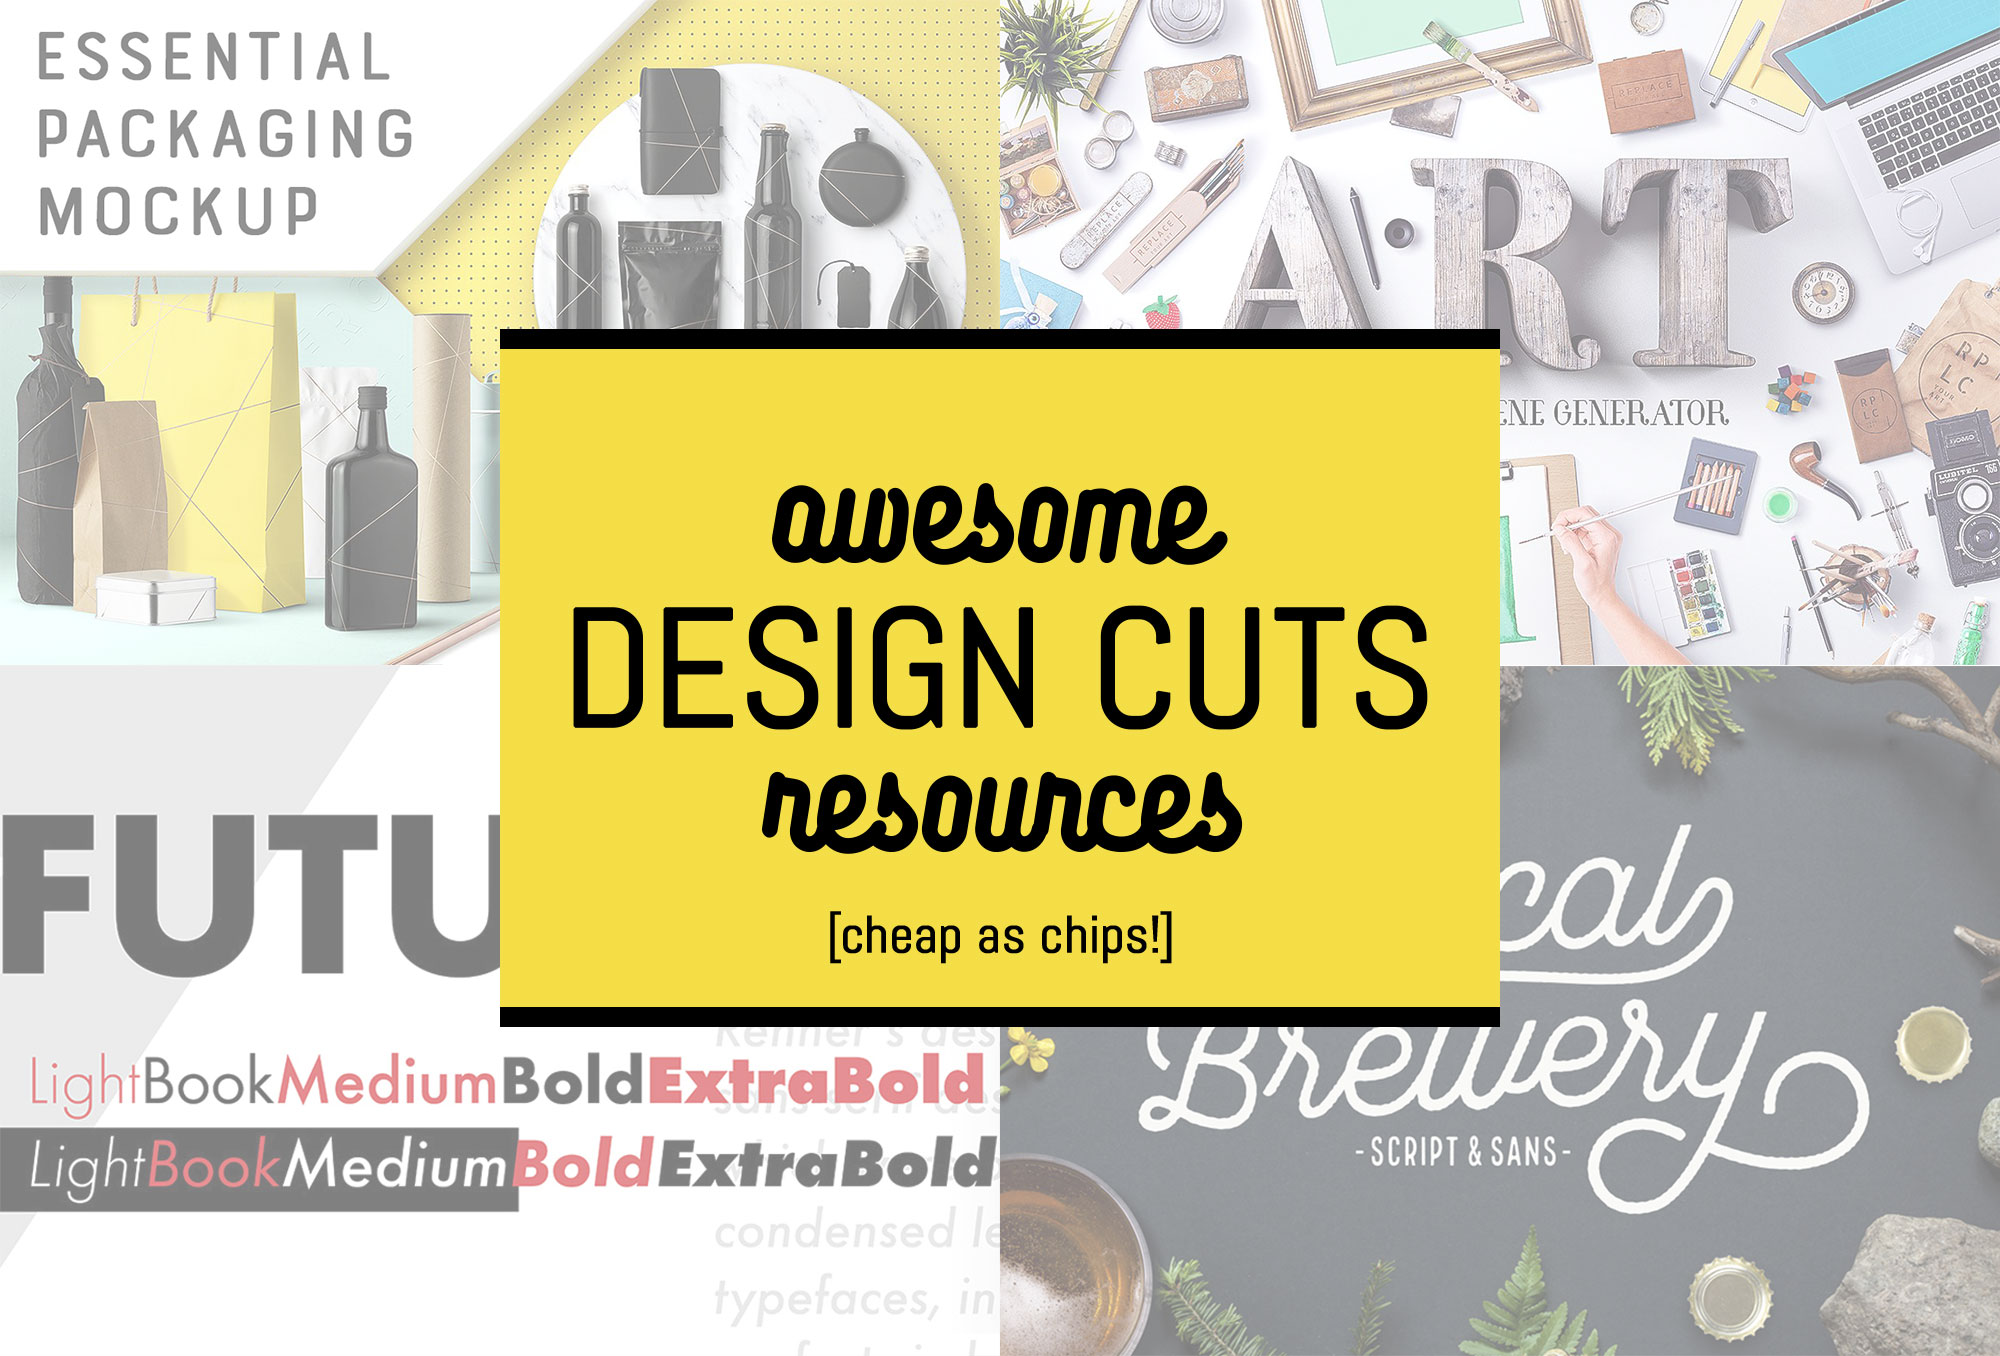 Awesome Design Cuts resources cheap as chips! [Limited time only] | Pitter Pattern